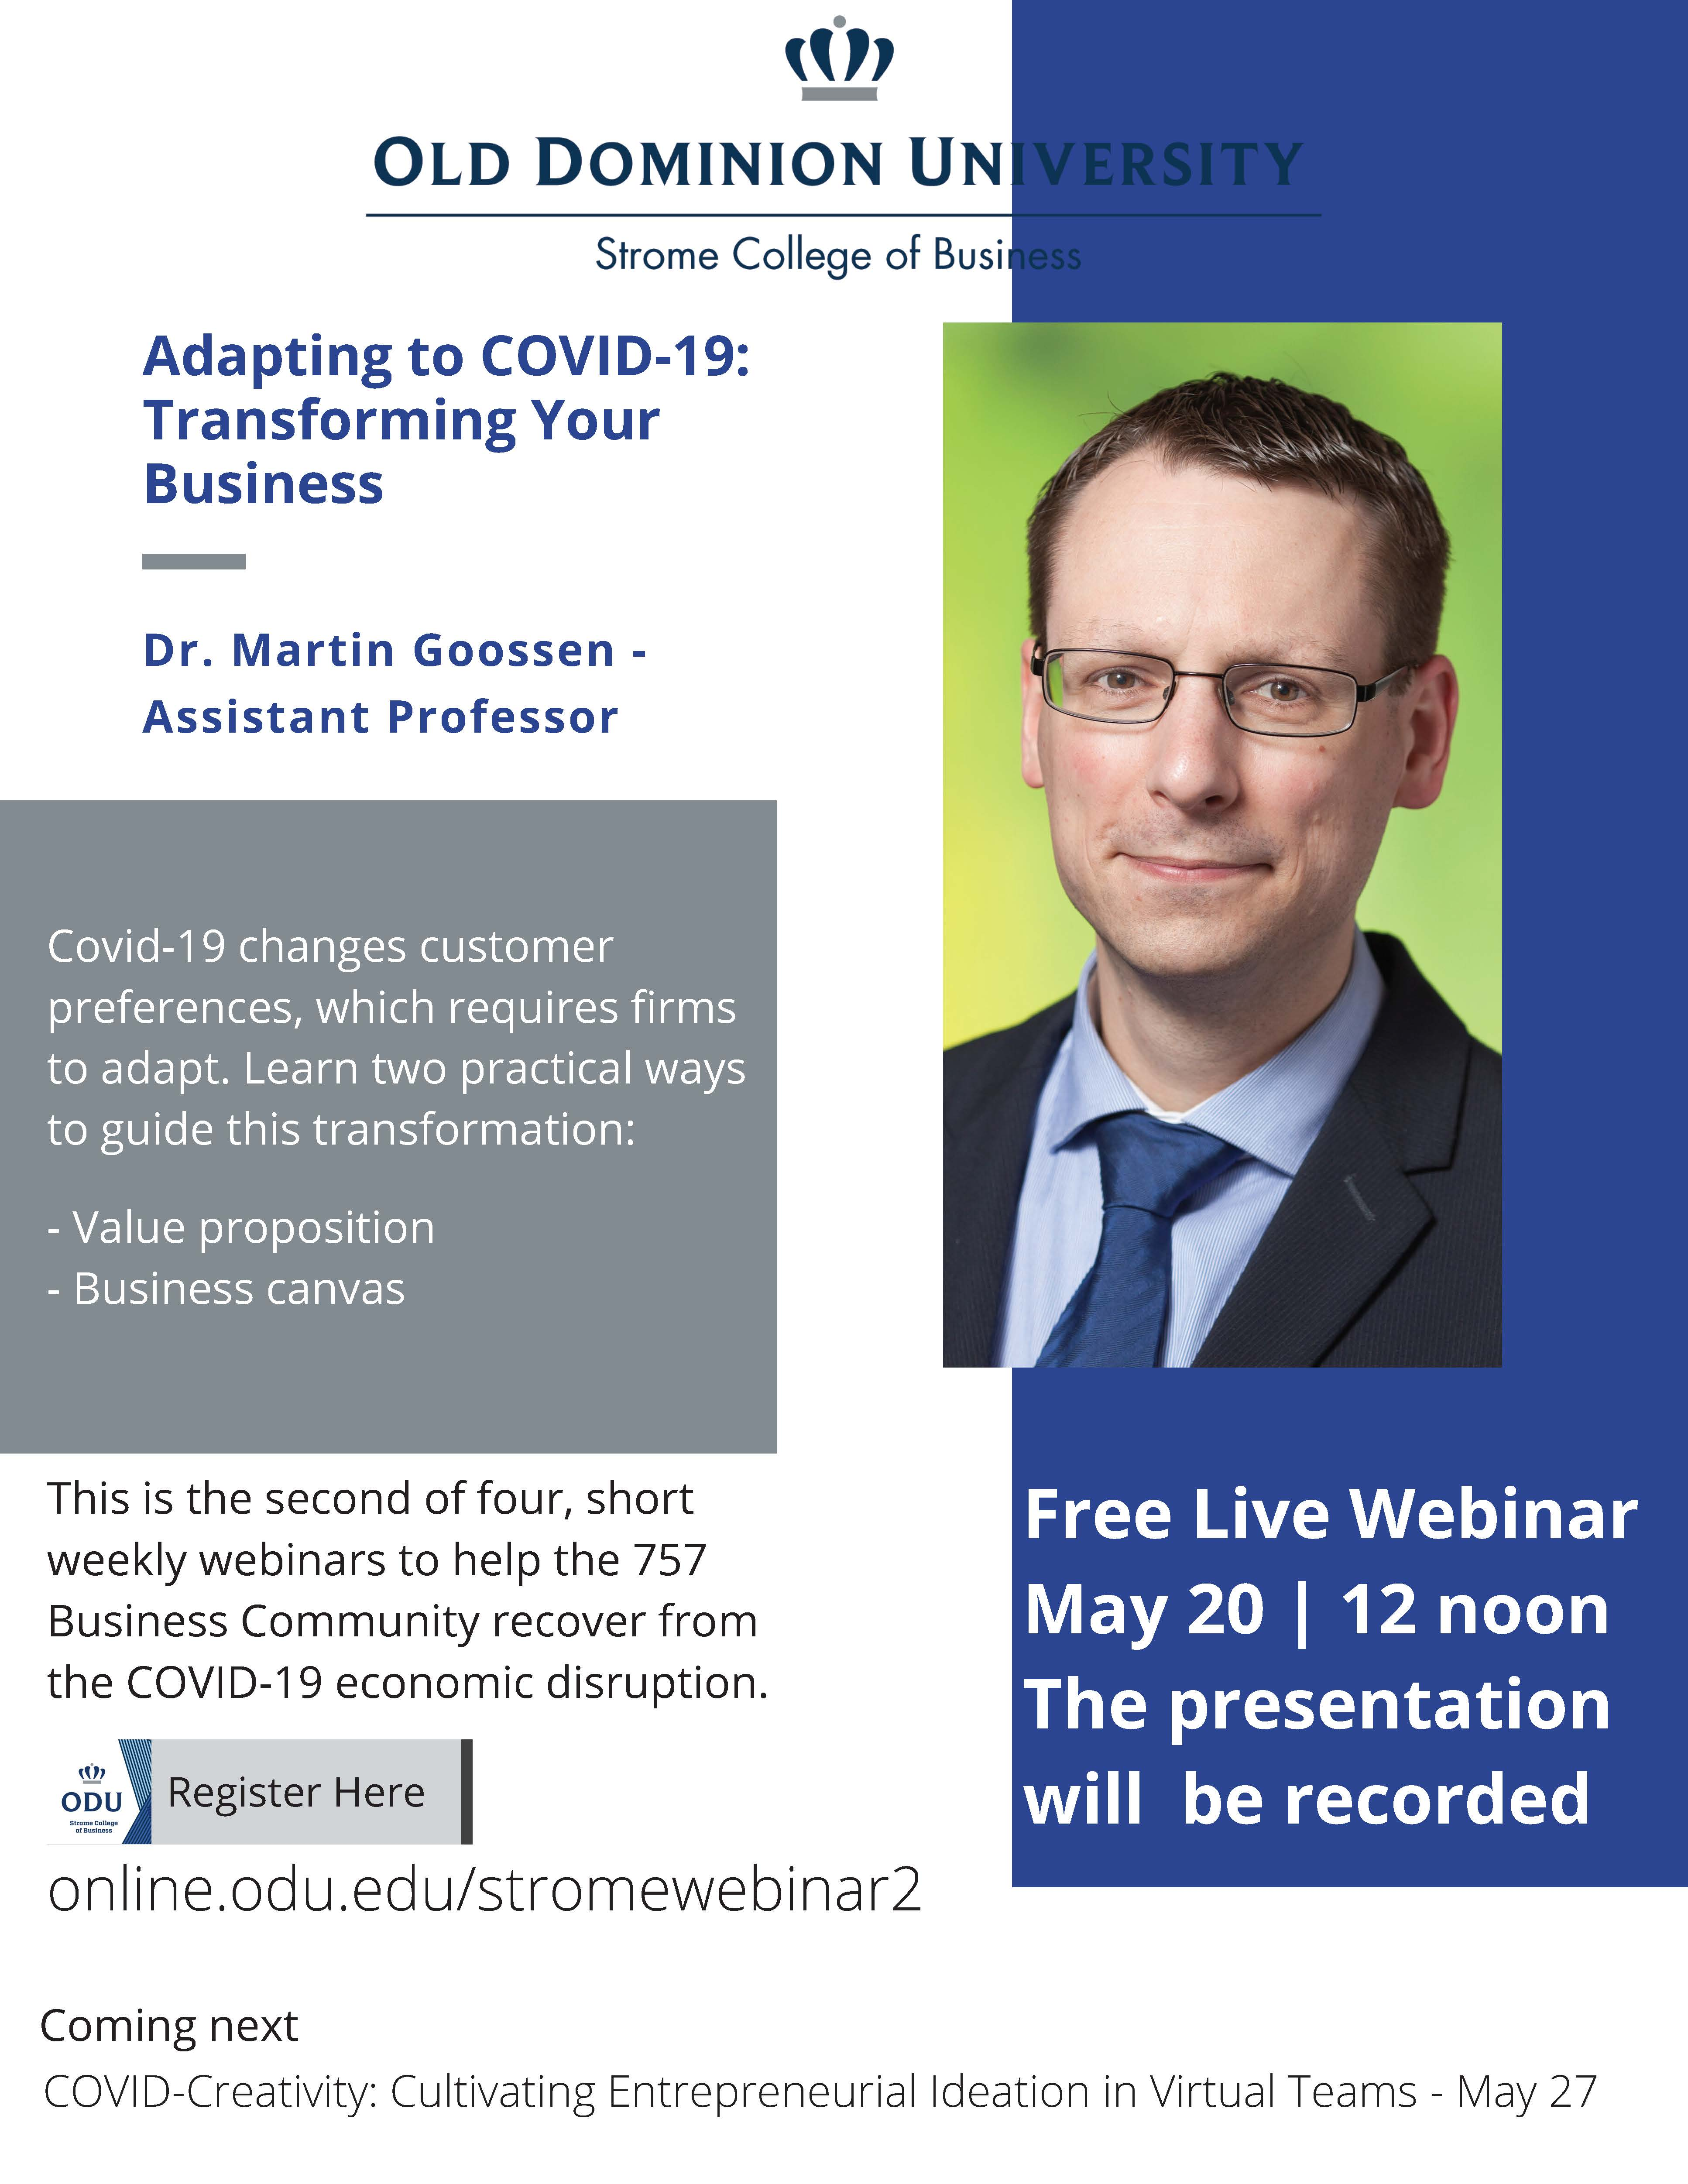 Adapting to Covid-19: Transforming your Business